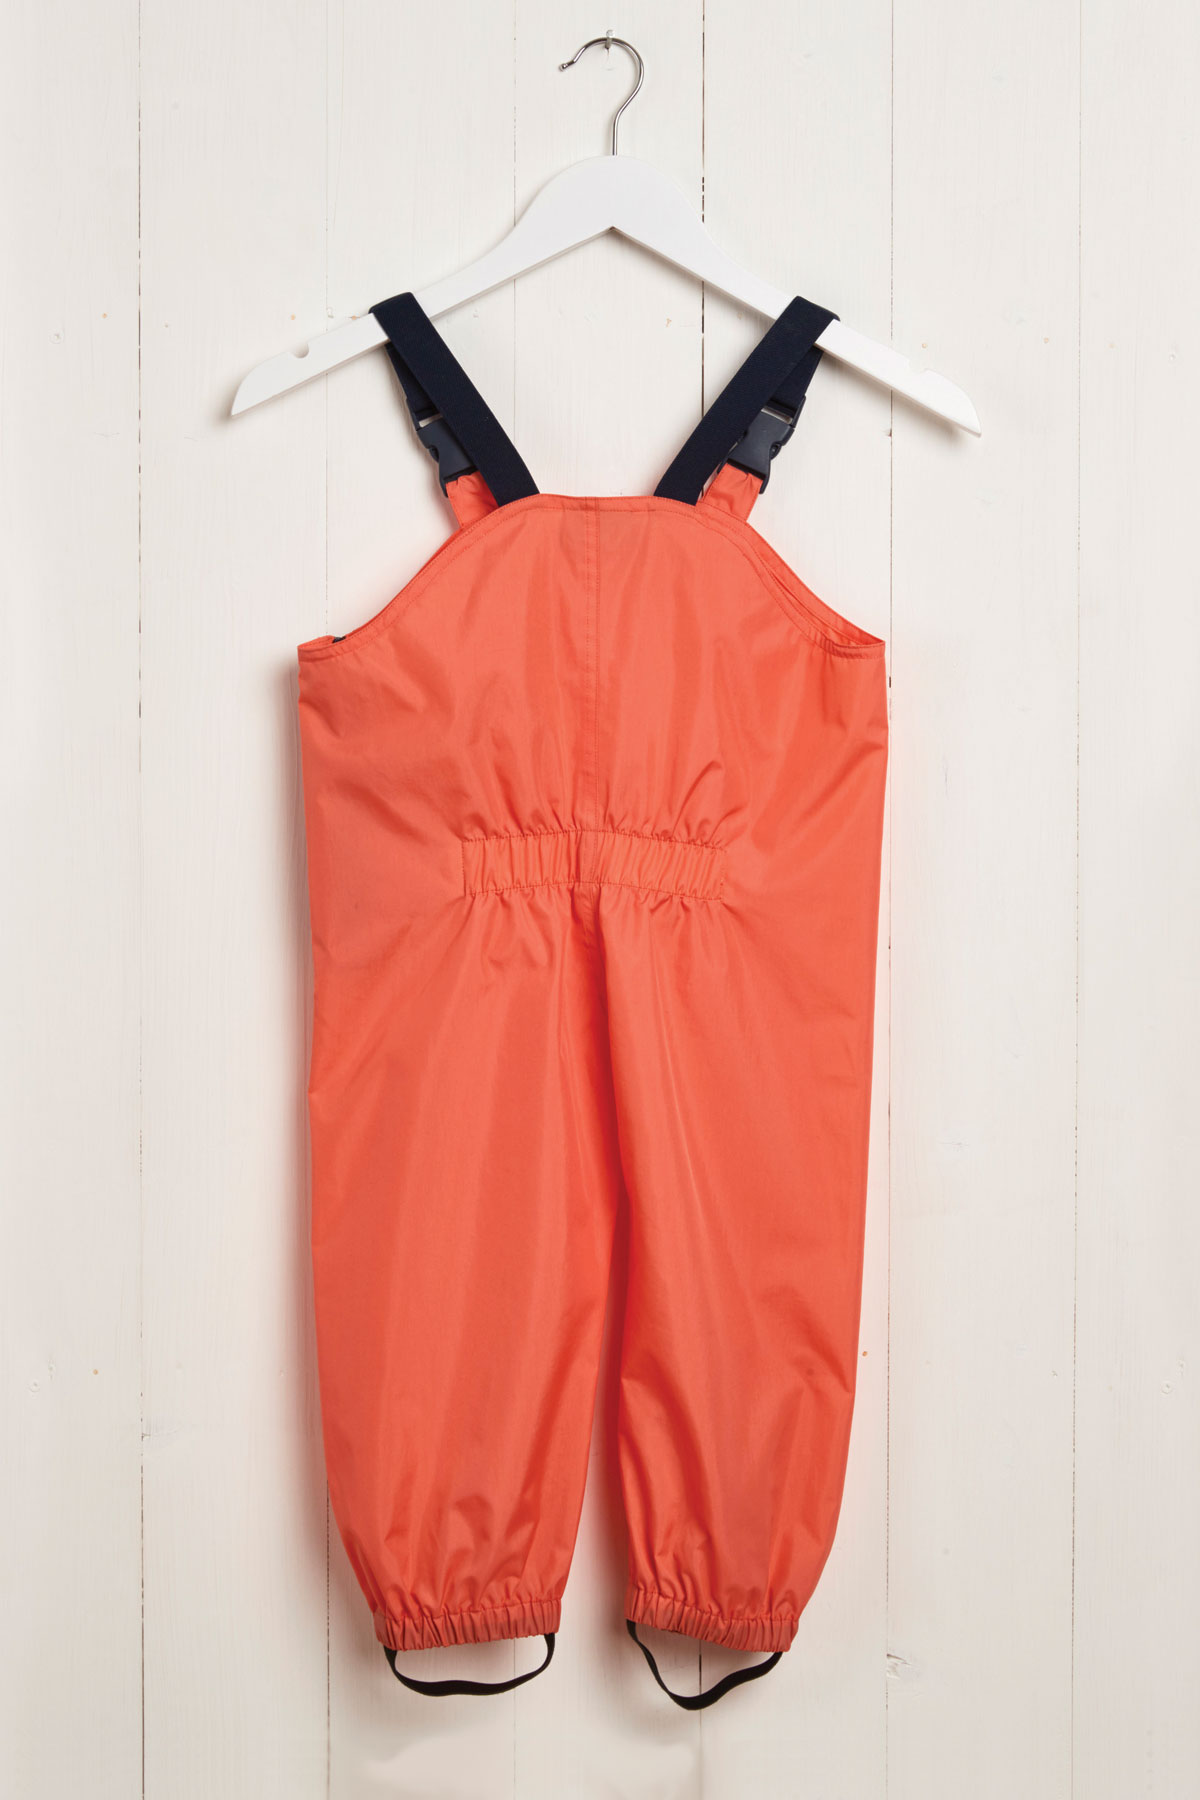 rear product view of kids coral waterproof dungarees